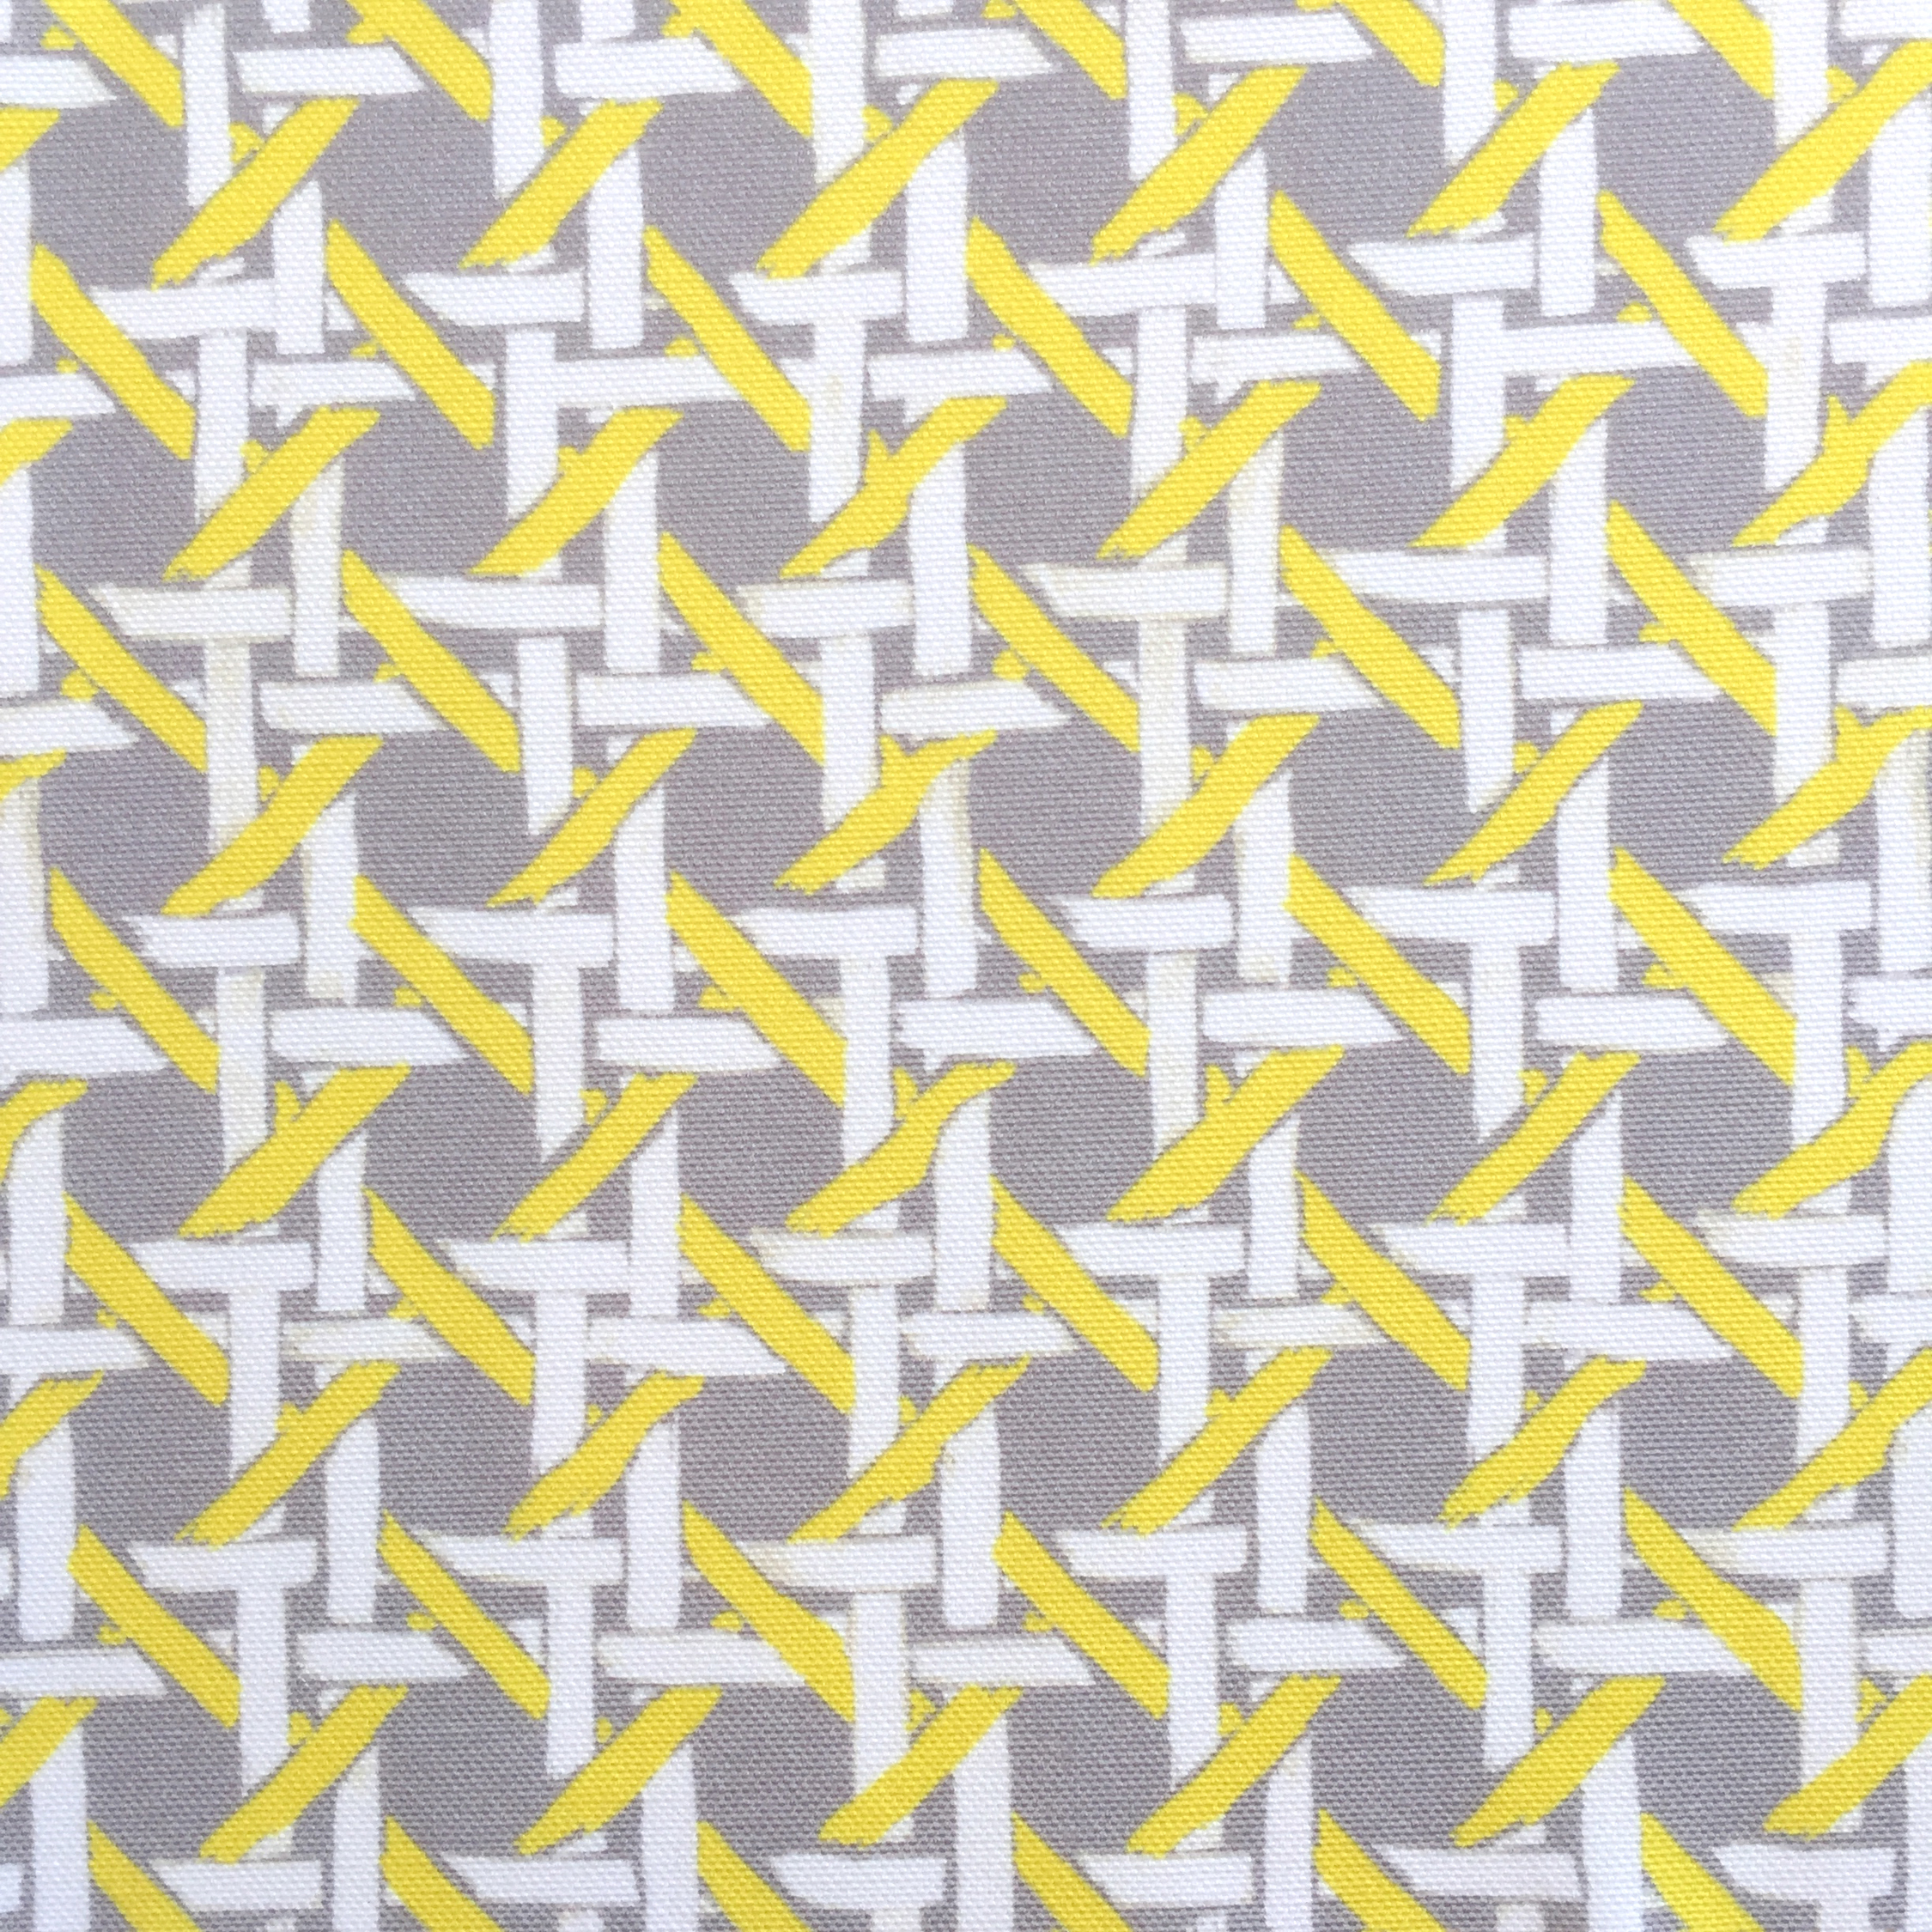 Cane Print in GULL GRAY  PALM SPRINGS COLLECTION